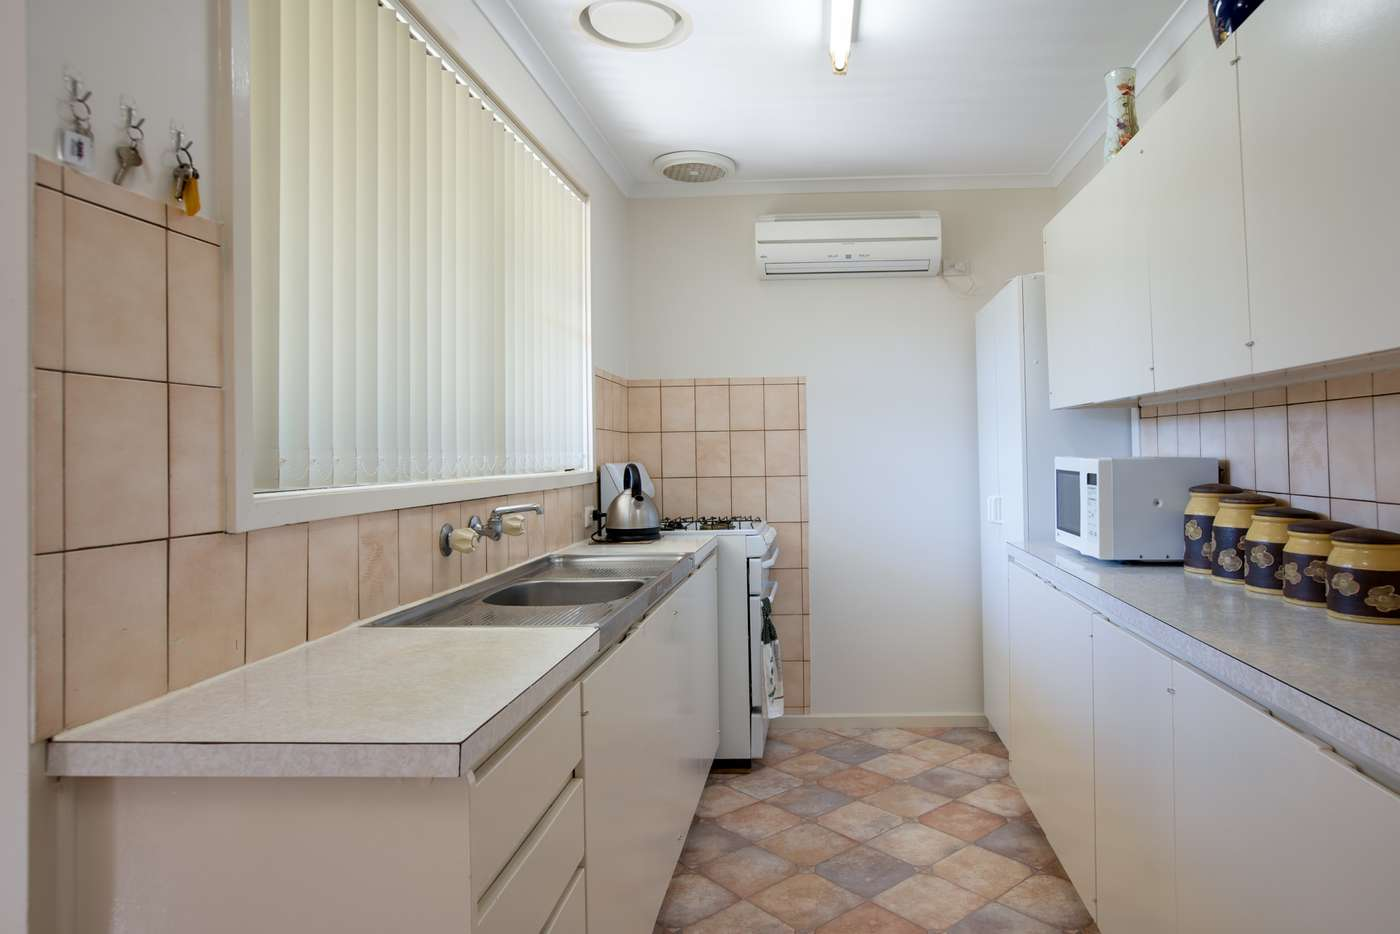 Fifth view of Homely house listing, 21 Melgaard Court, Wodonga VIC 3690